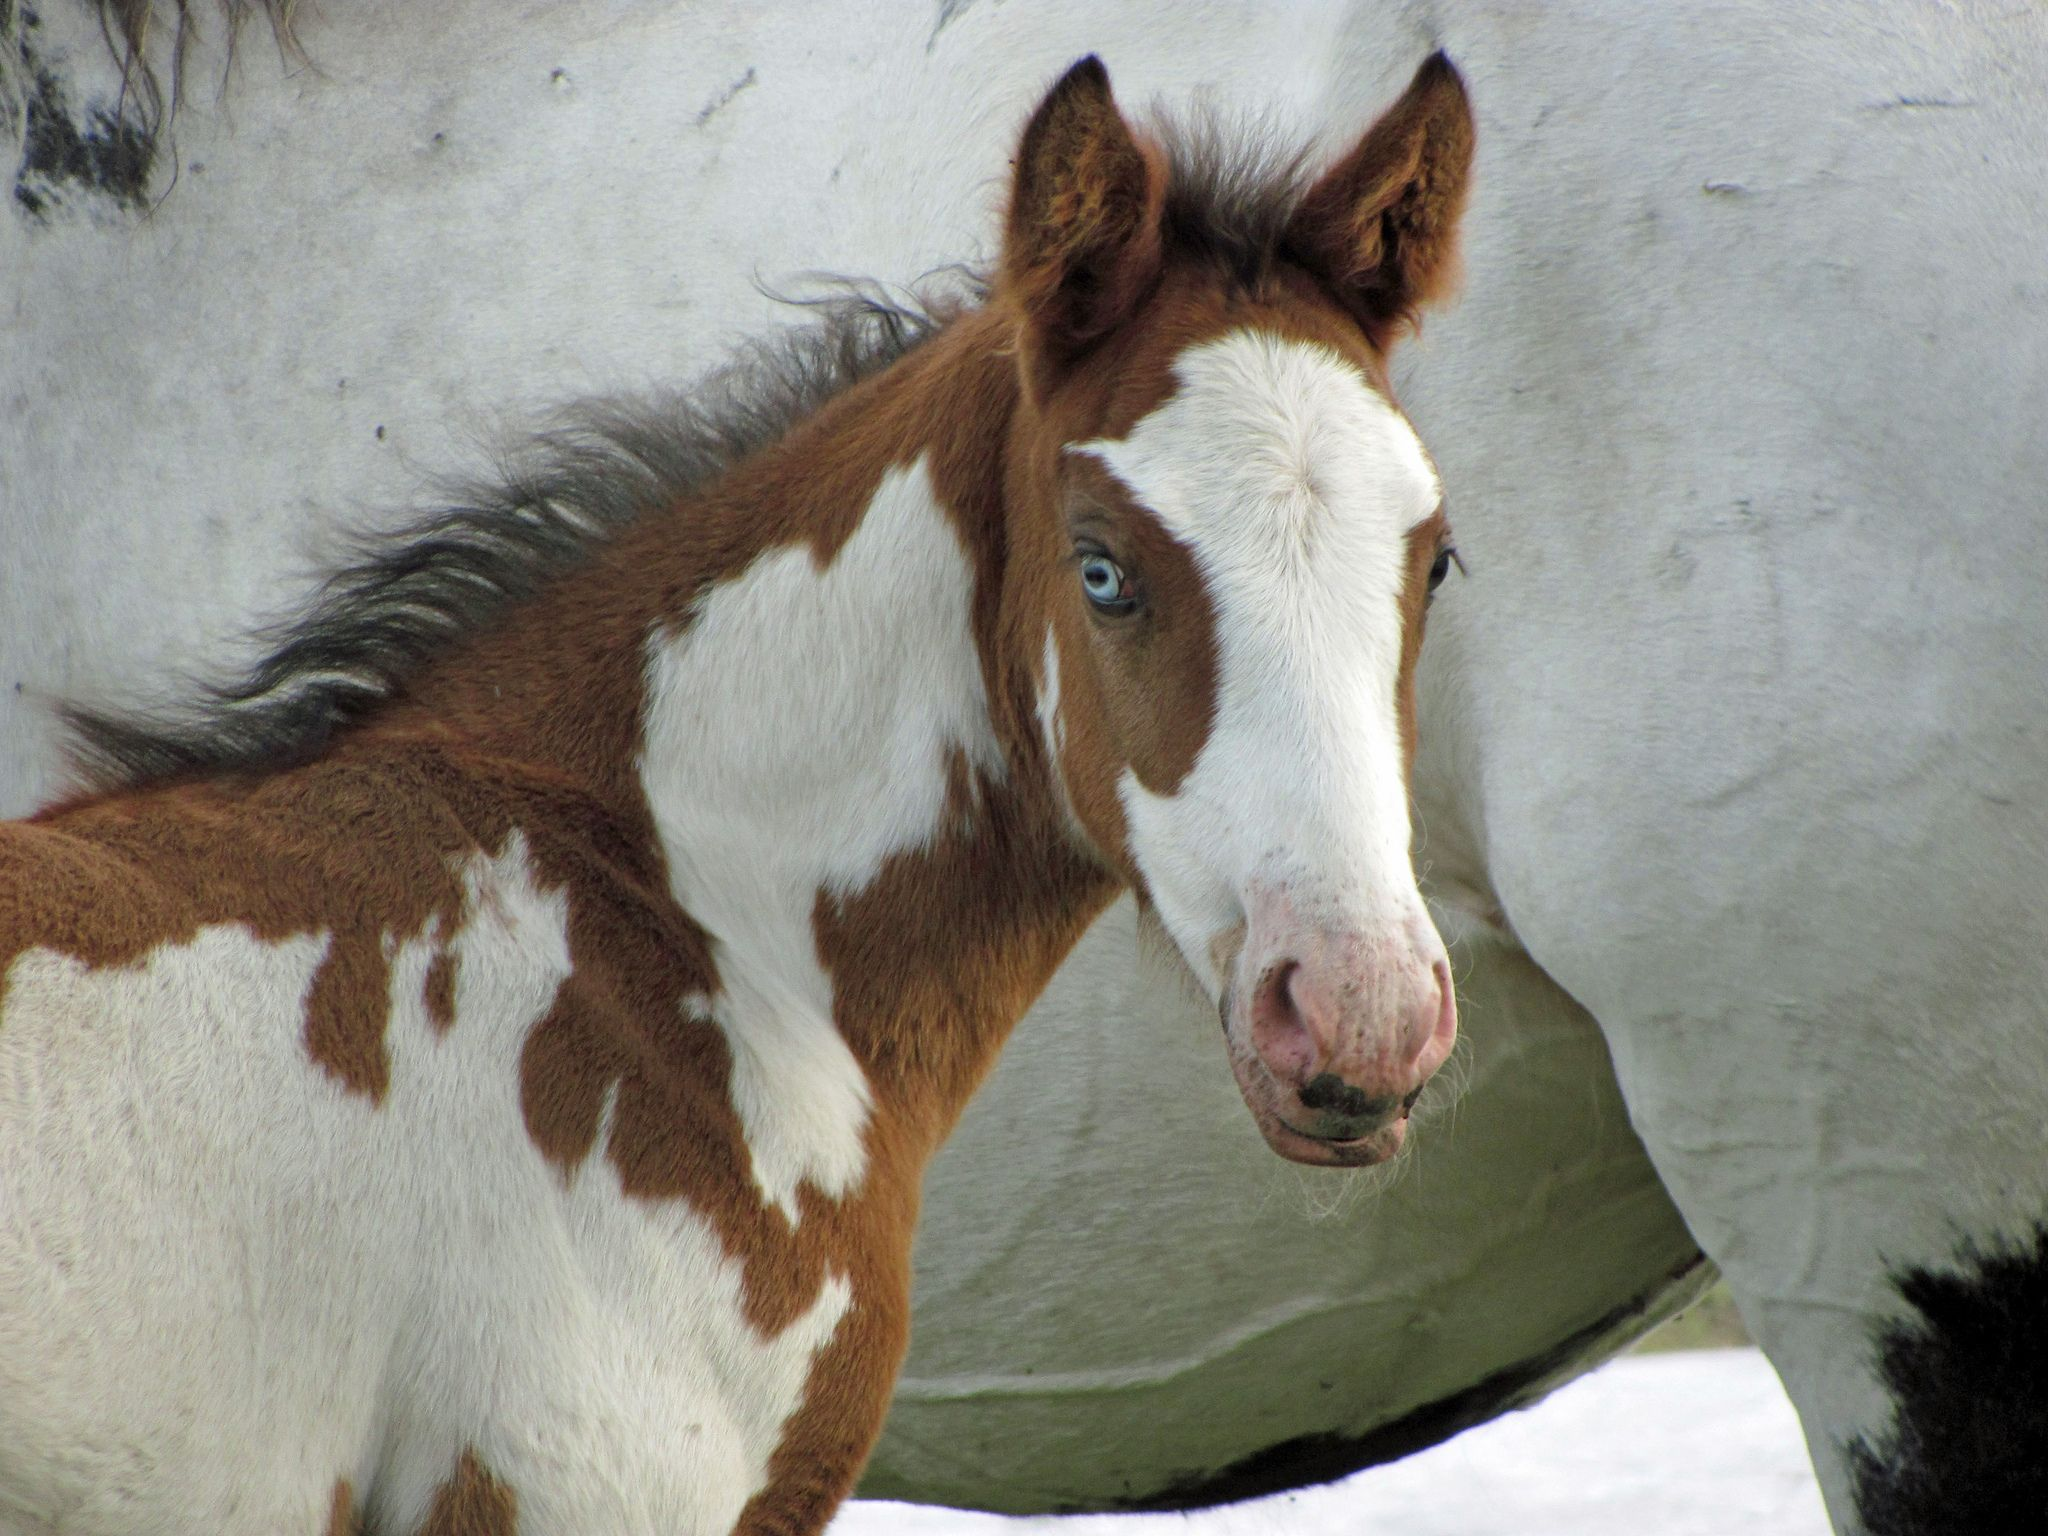 Wild Horse Management Plan Would Guarantee Extinction Mustang Advocates Say